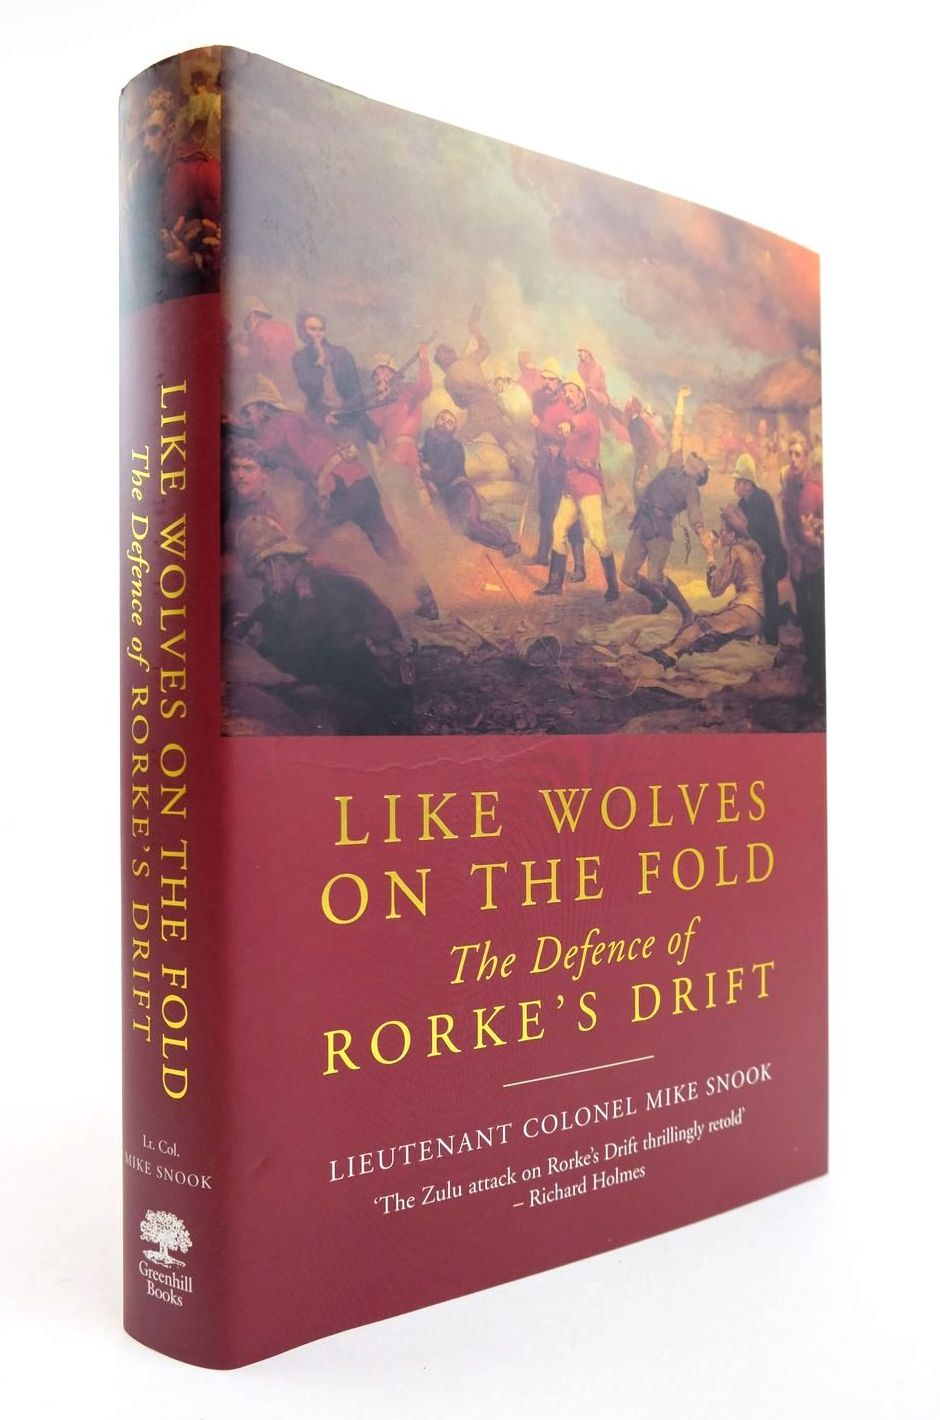 Photo of LIKE WOLVES ON THE FOLD THE DEFENCE OF RORKE'S DRIFT written by Snook, Mike published by Greenhill Books (STOCK CODE: 2132318)  for sale by Stella & Rose's Books